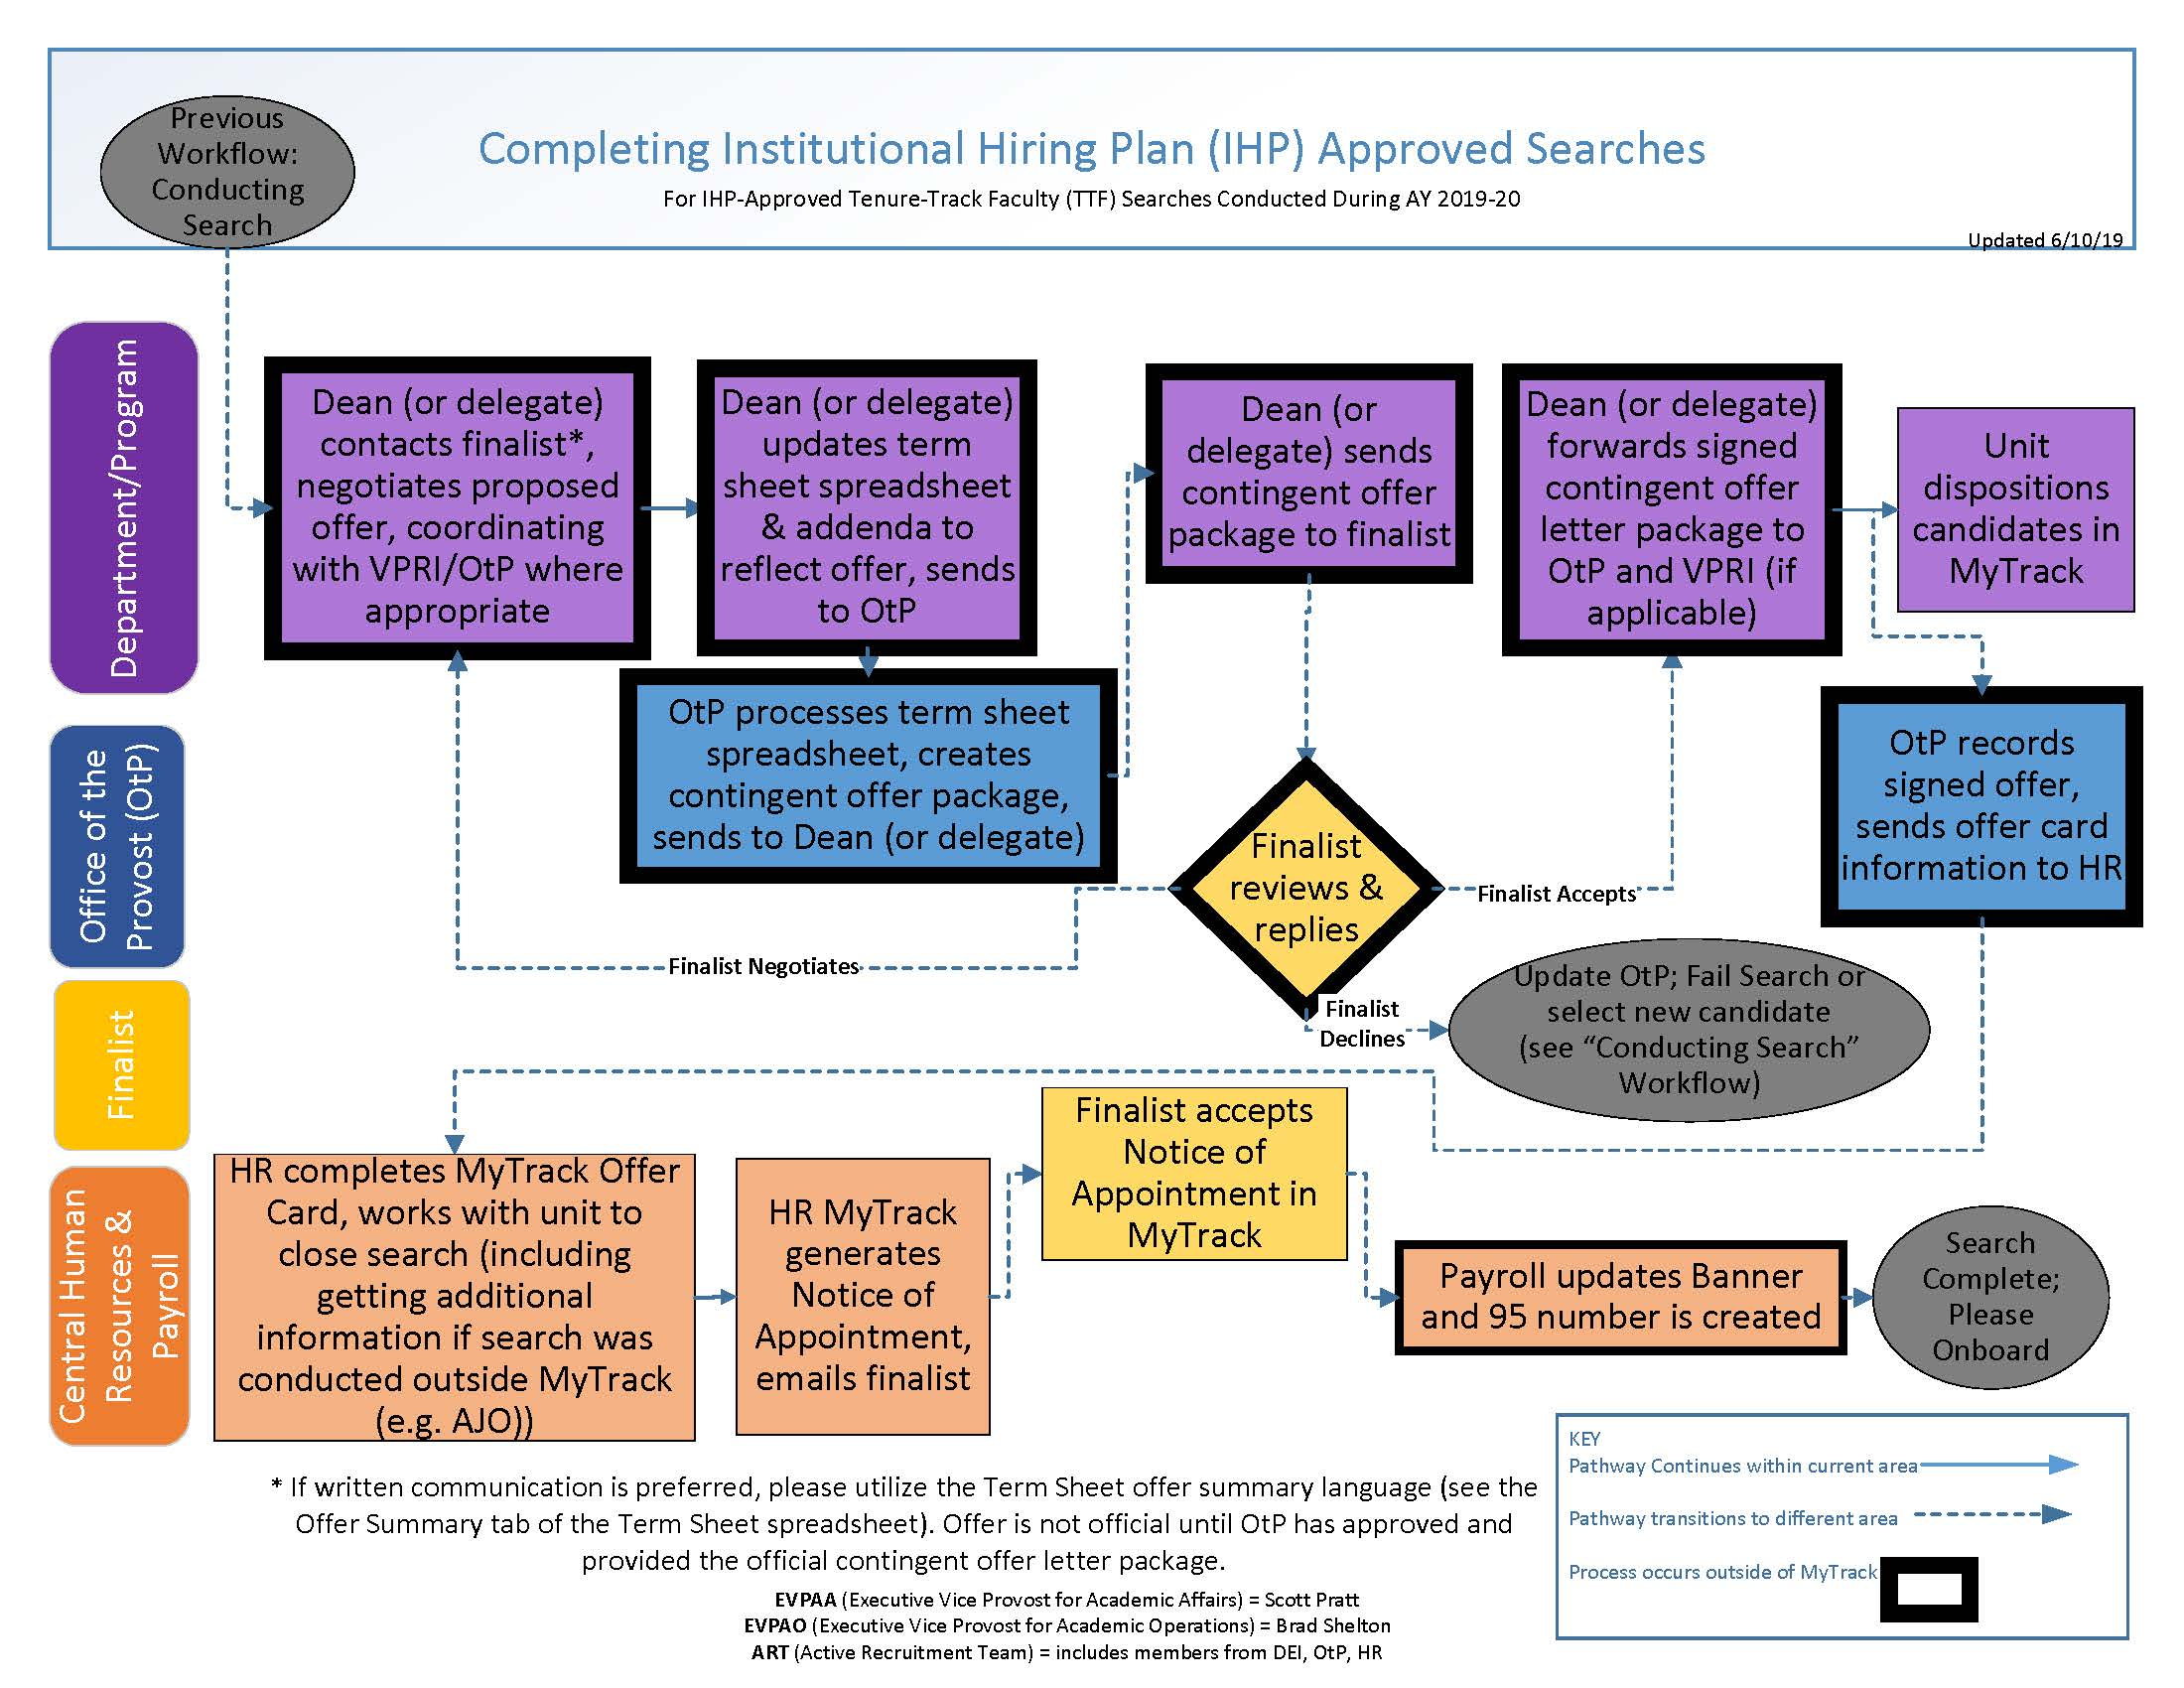 flow chart of the institutional hiring plan completing a ttf search